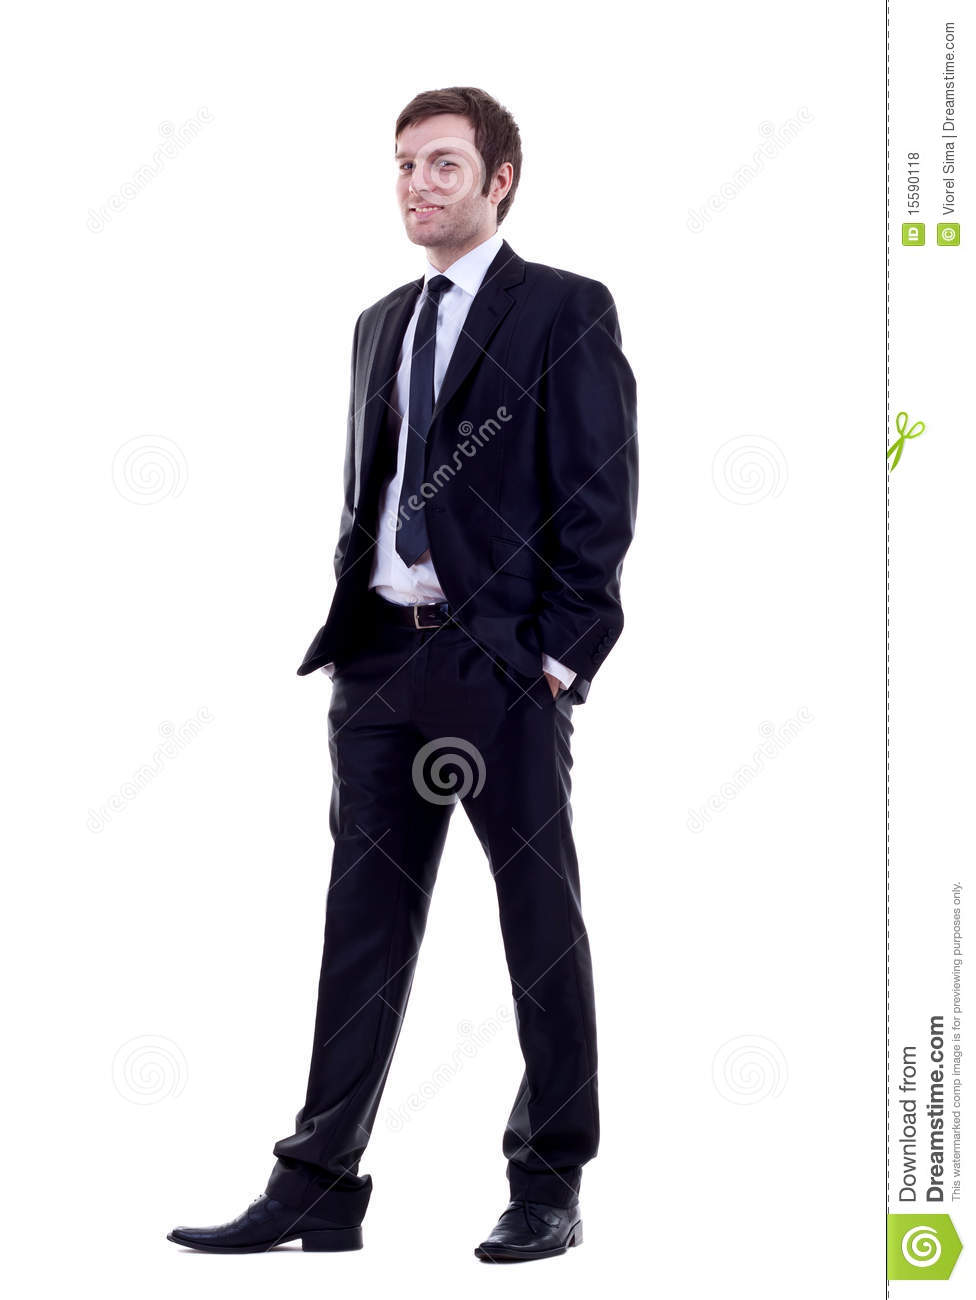 business-man-standing-15590118.jpg